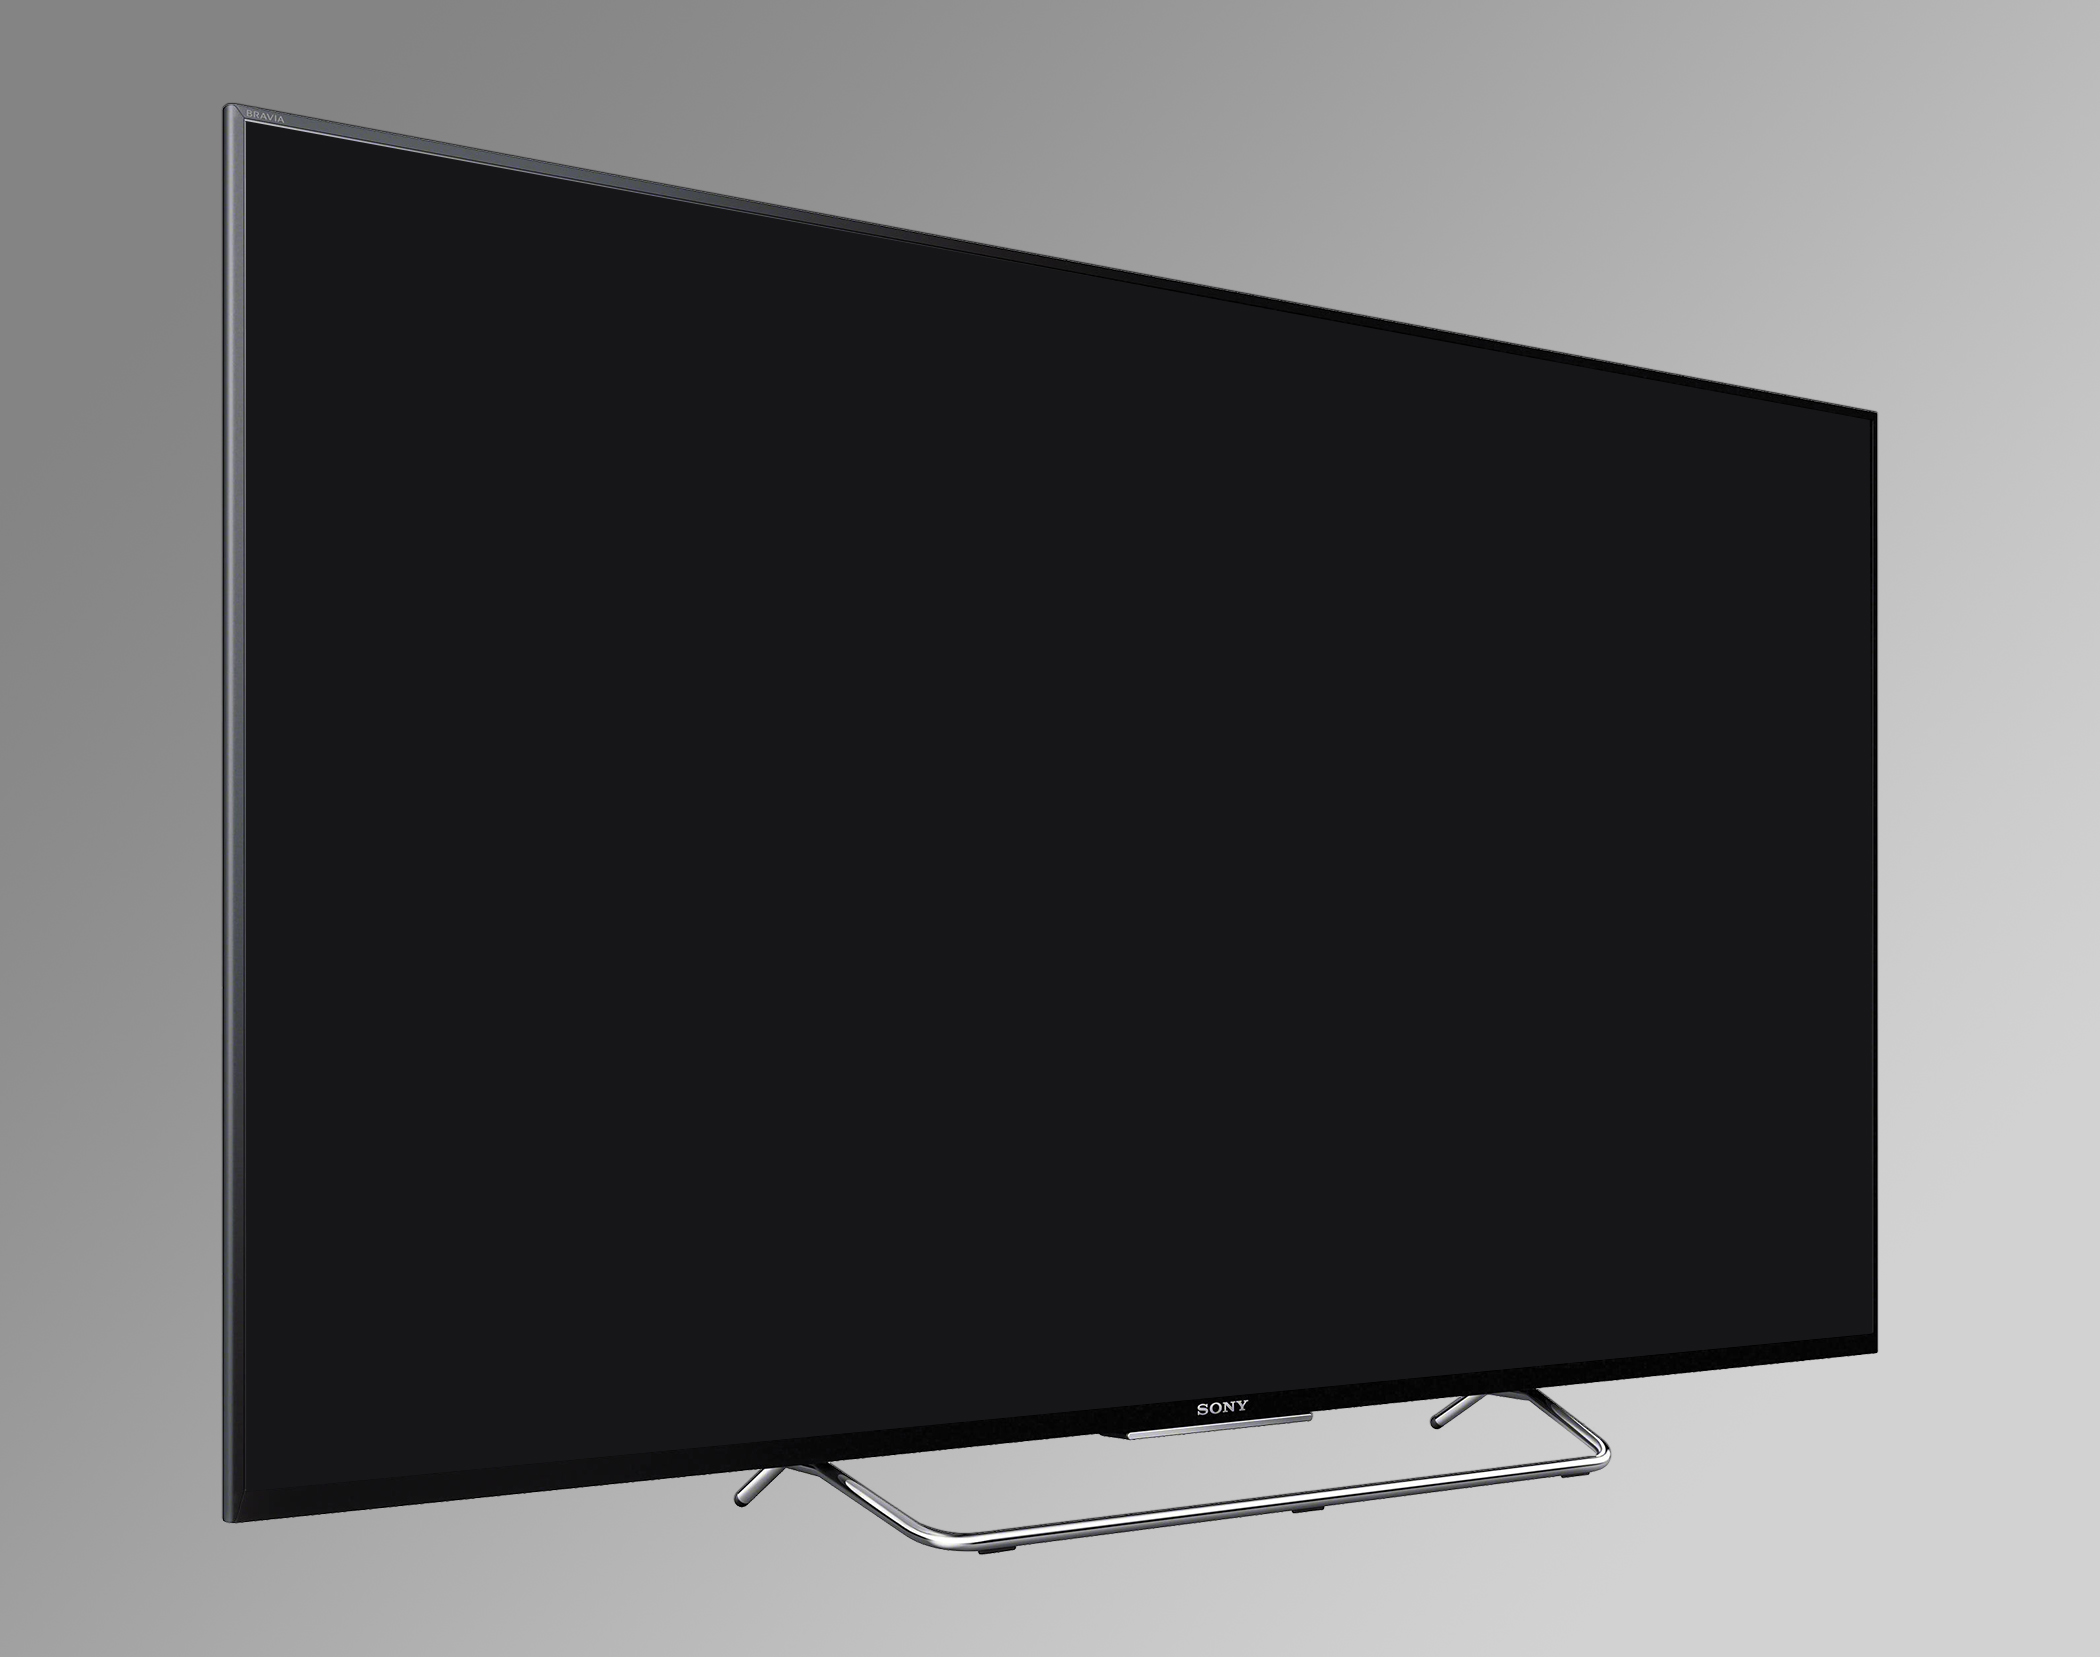 Sony KDL-48W650D PROP TV